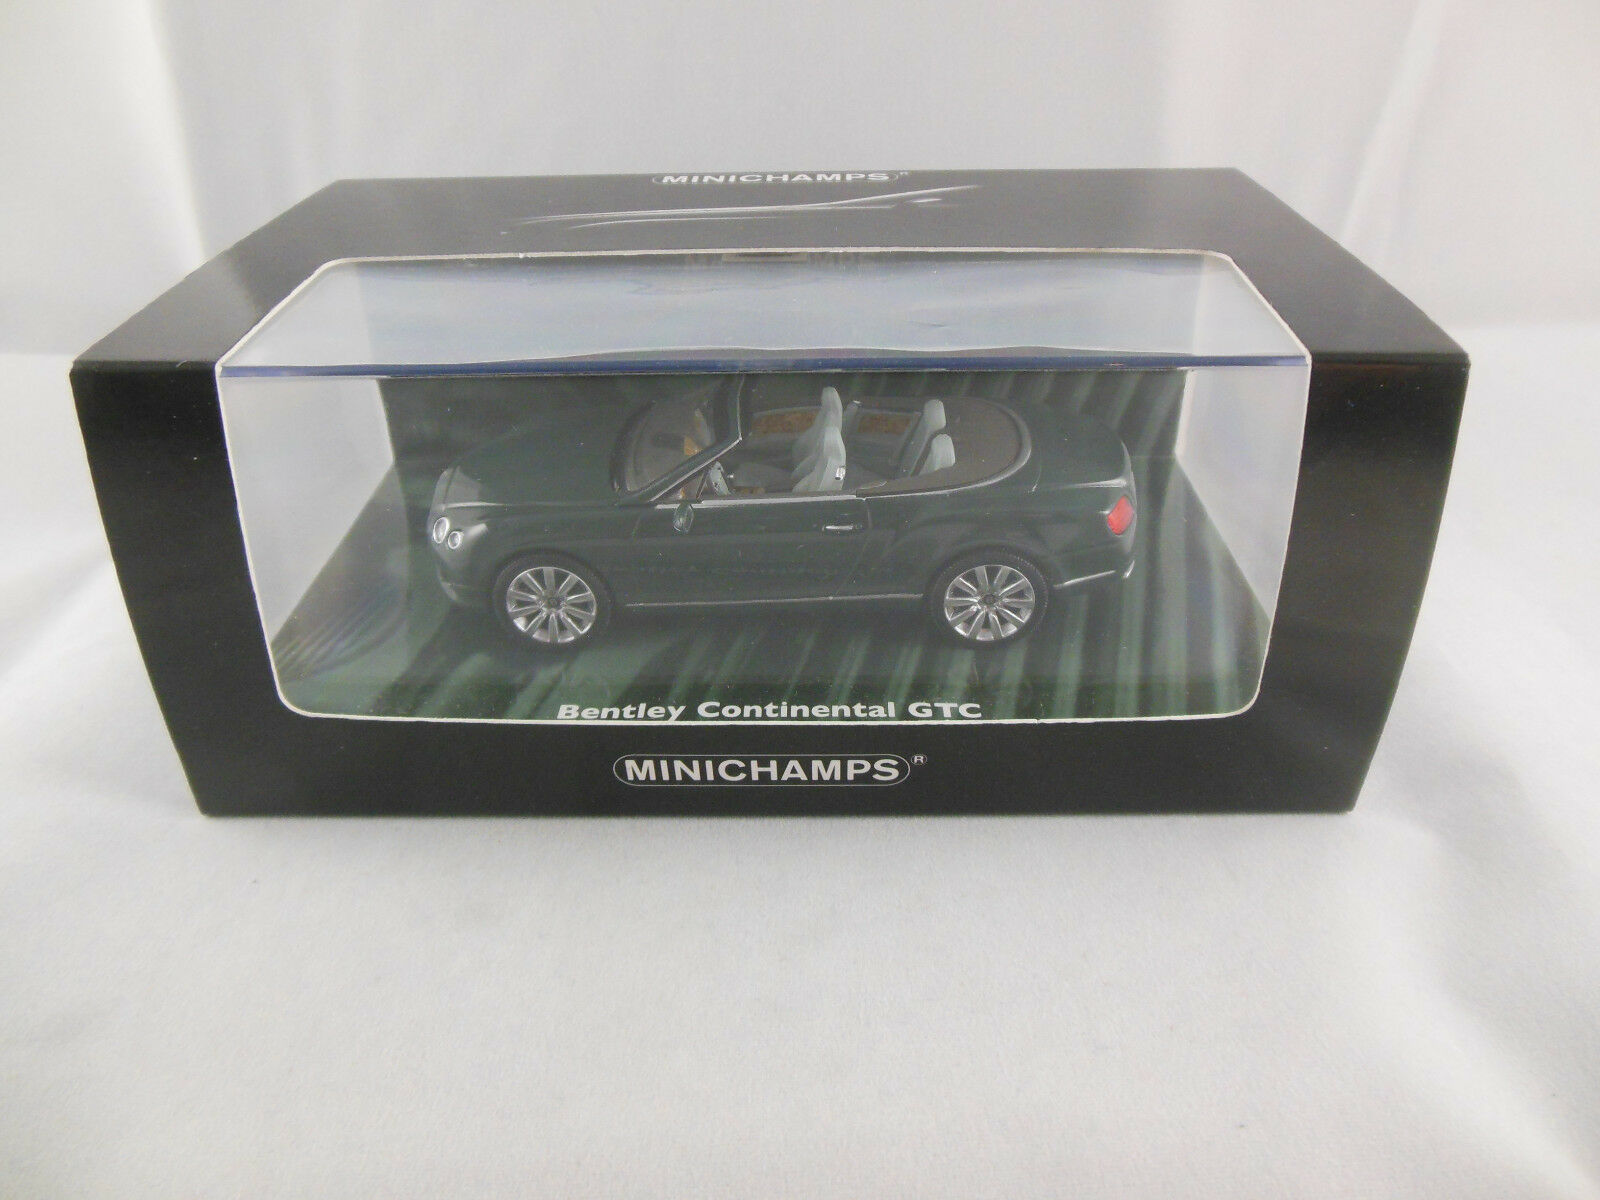 autentico en linea Minichamps 436 139060 139060 139060 2011 Bentley Continental GTC en verde Escala 1 43  80% de descuento